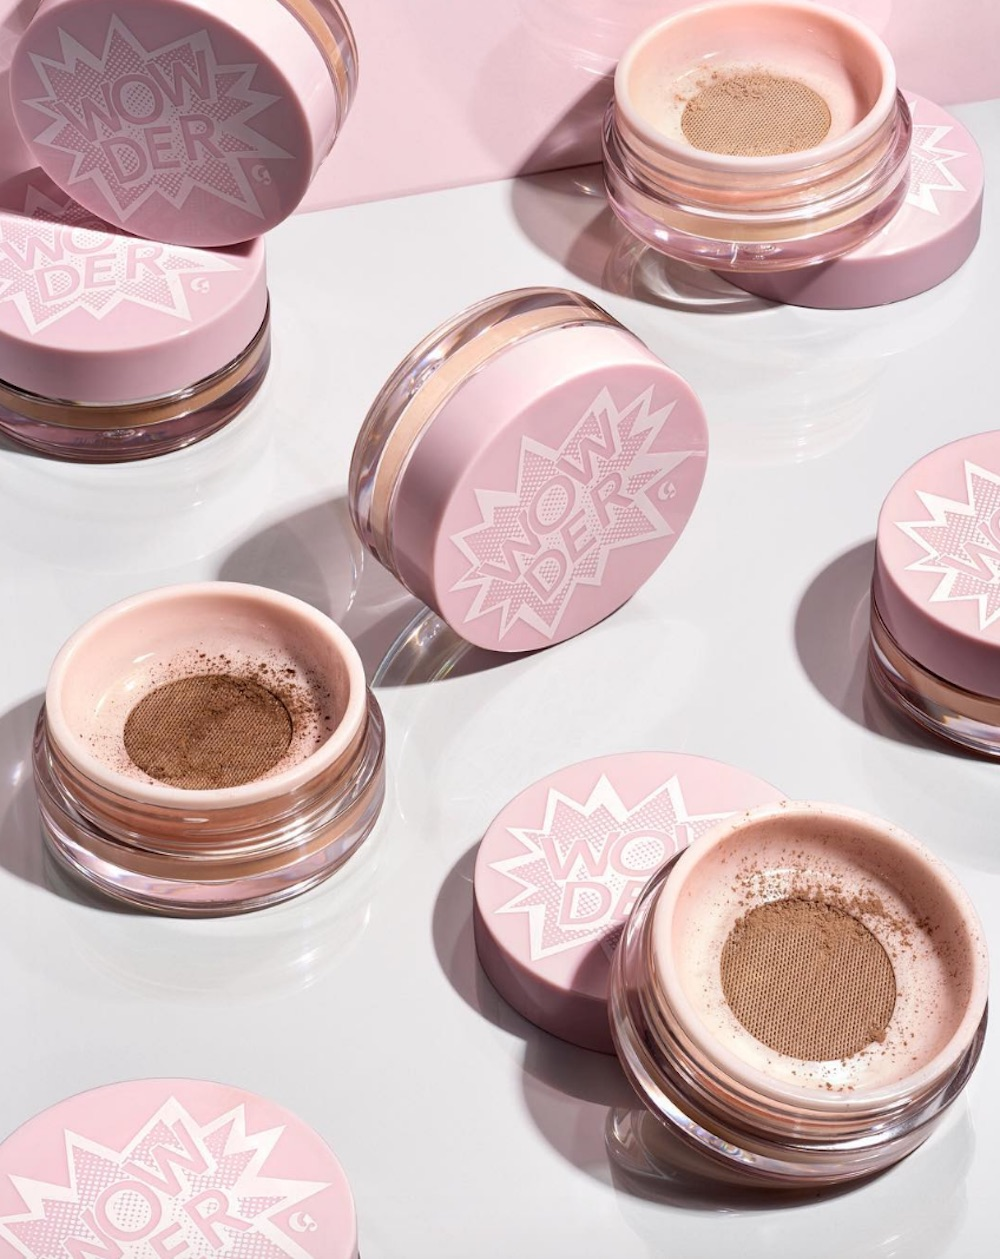 The rumors were true — Glossier just launched a new face powder that will become your holy grail